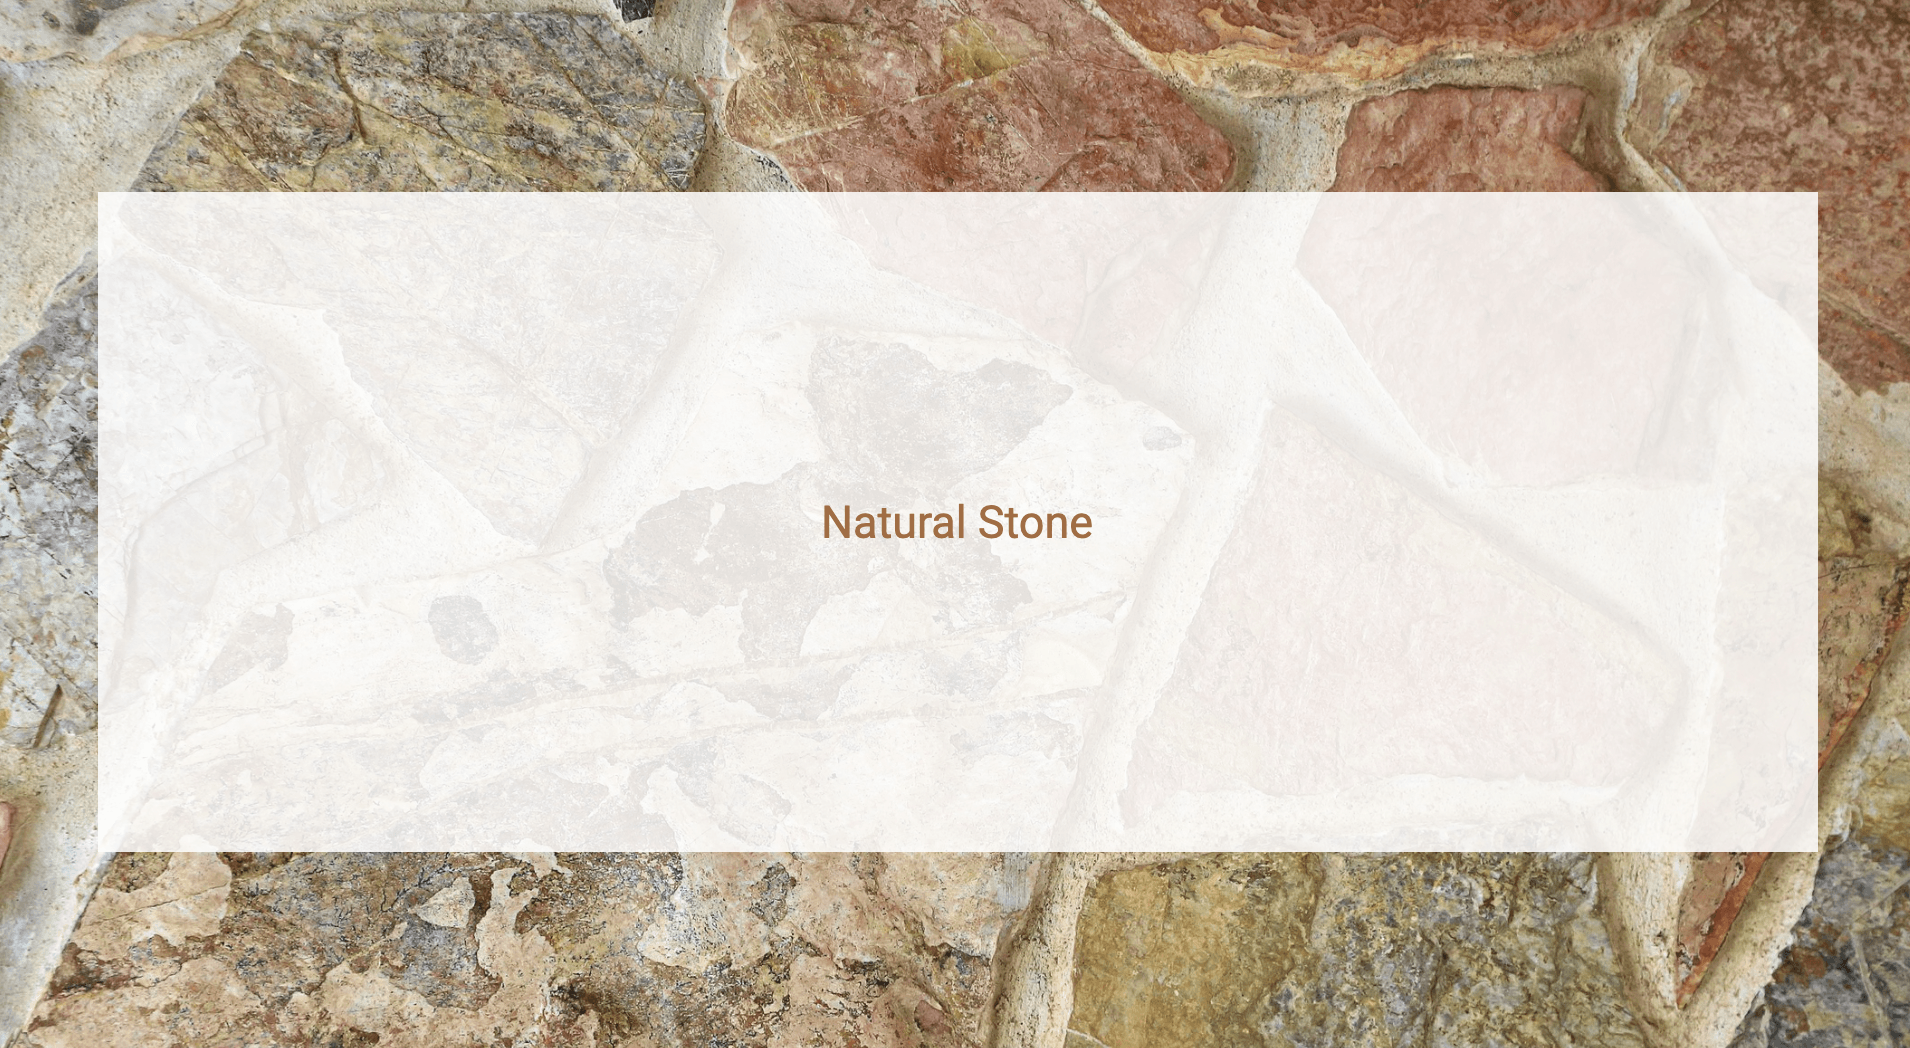 Natural Stone in brown text with various shapes of lightly-colored stone in the background